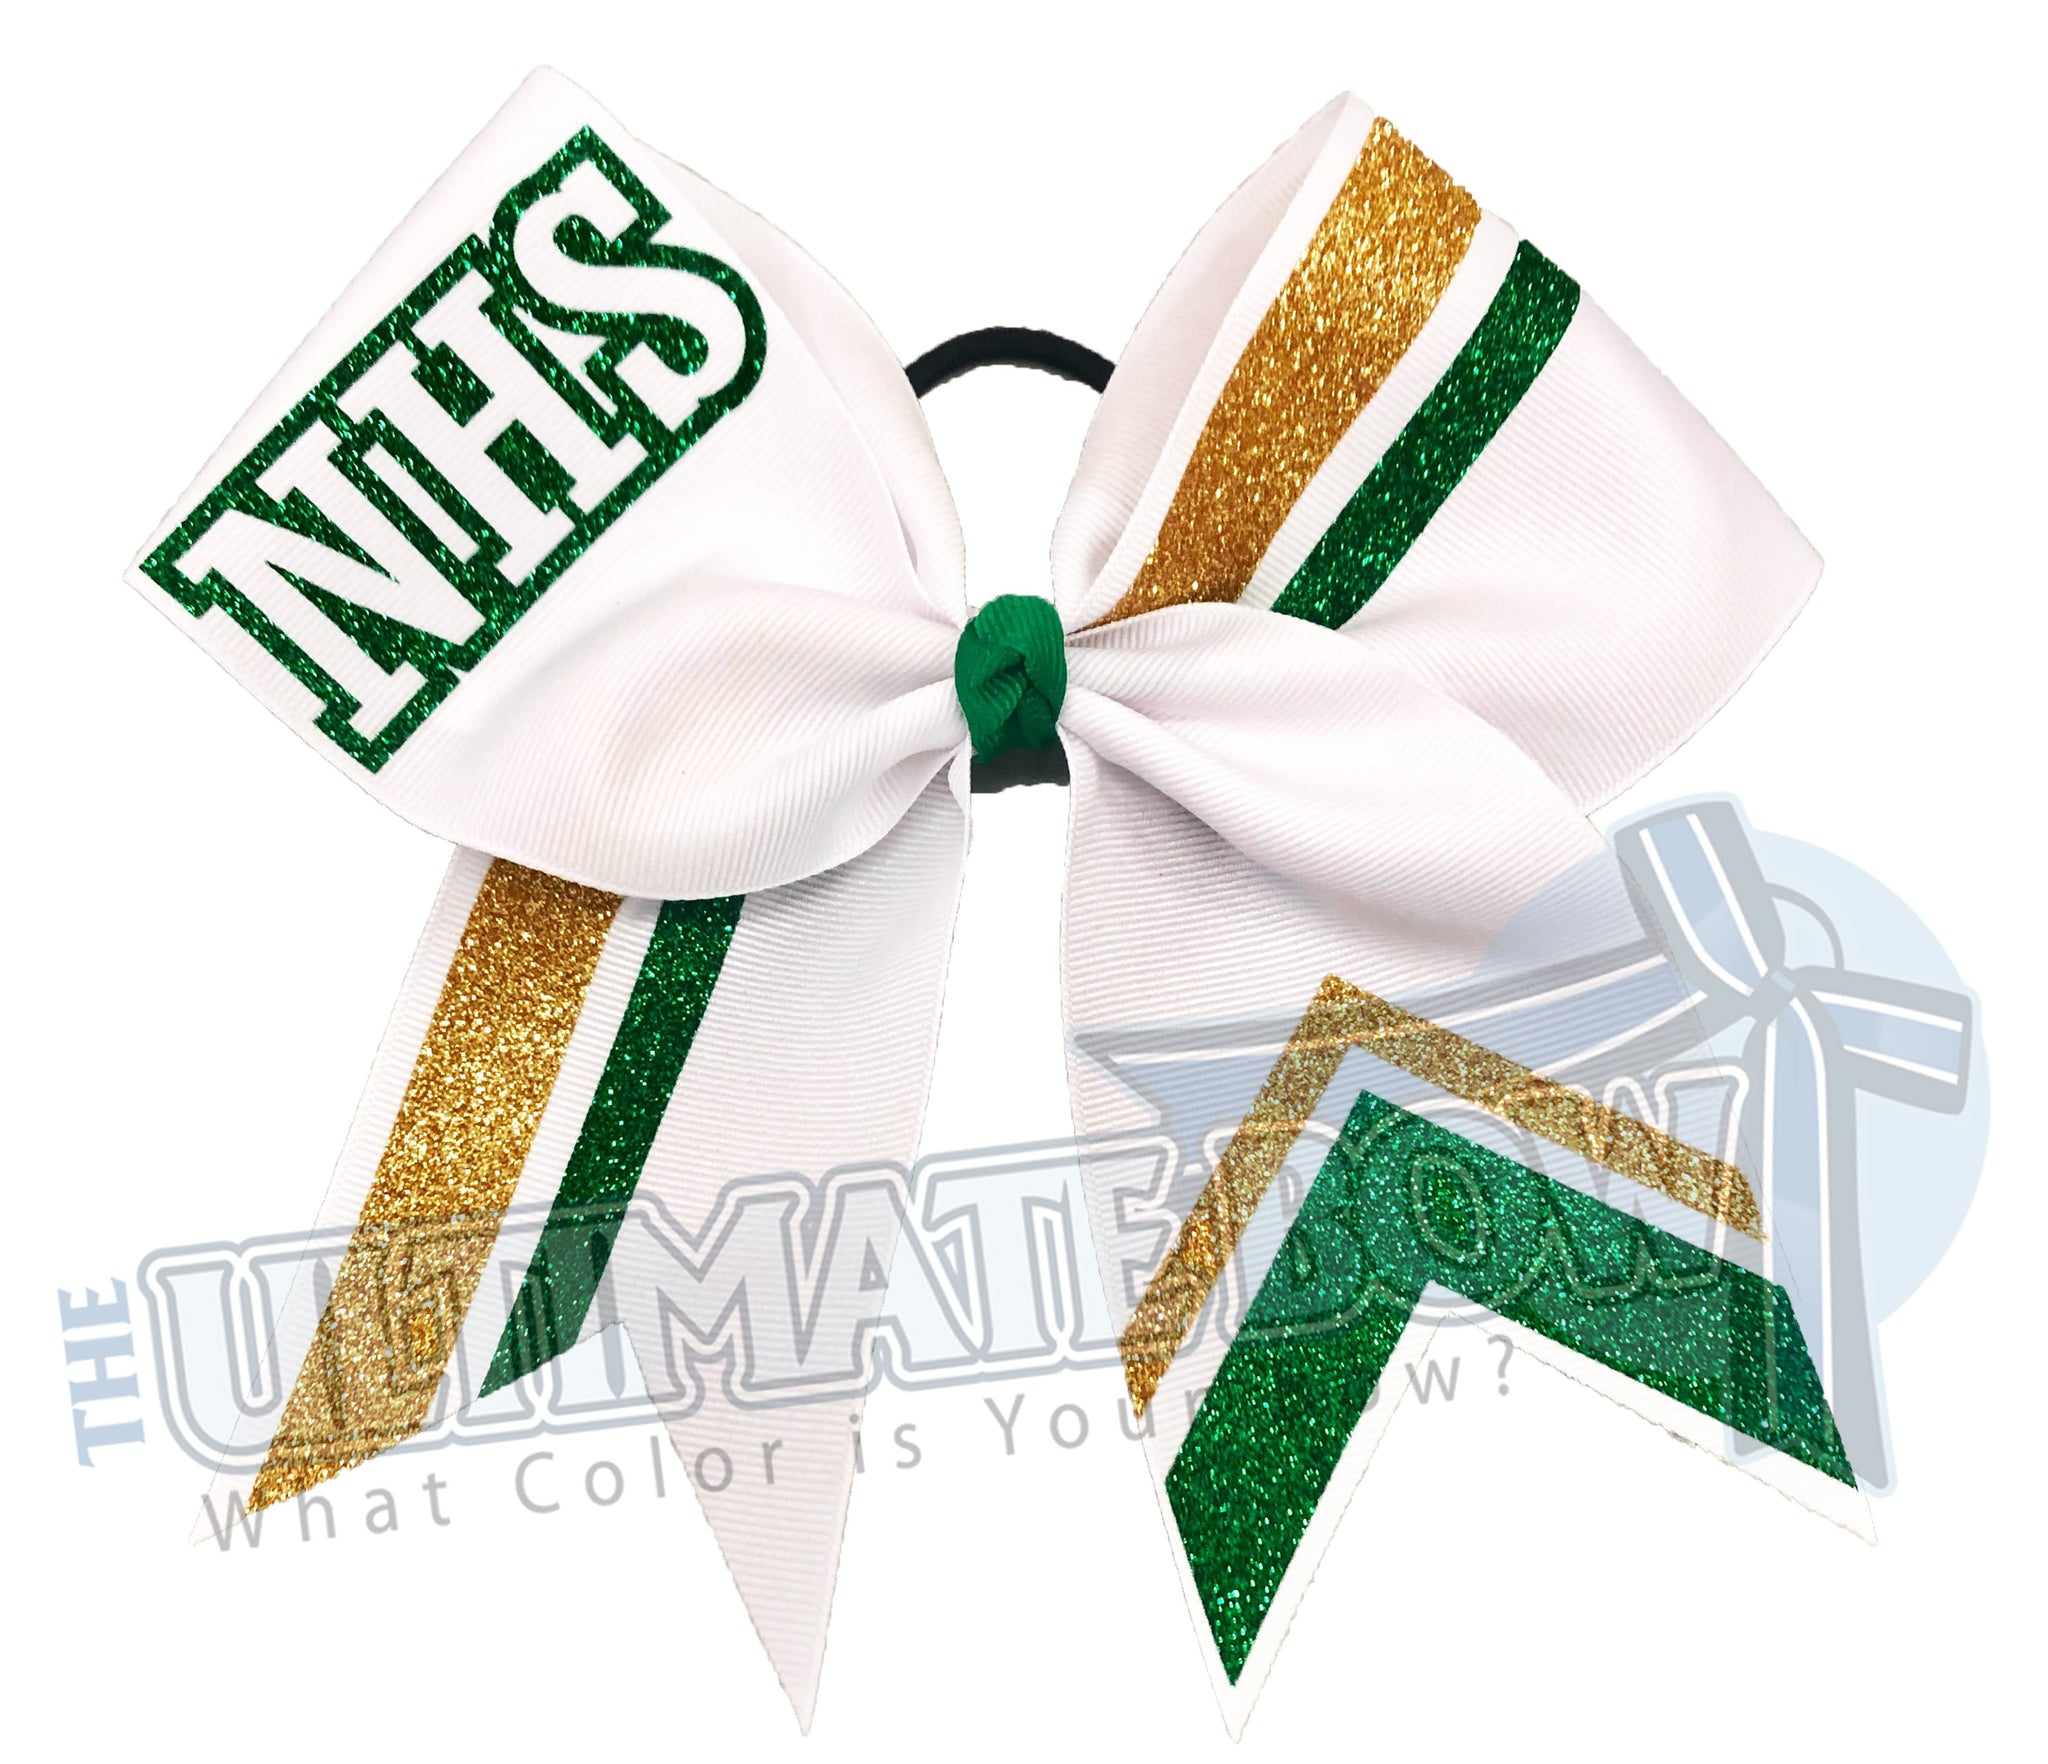 NHS-glitter-stripes-Gold emerald glitter white-cheer-bow-glitter-varsity-cheer-softball-school-recreational-cheer